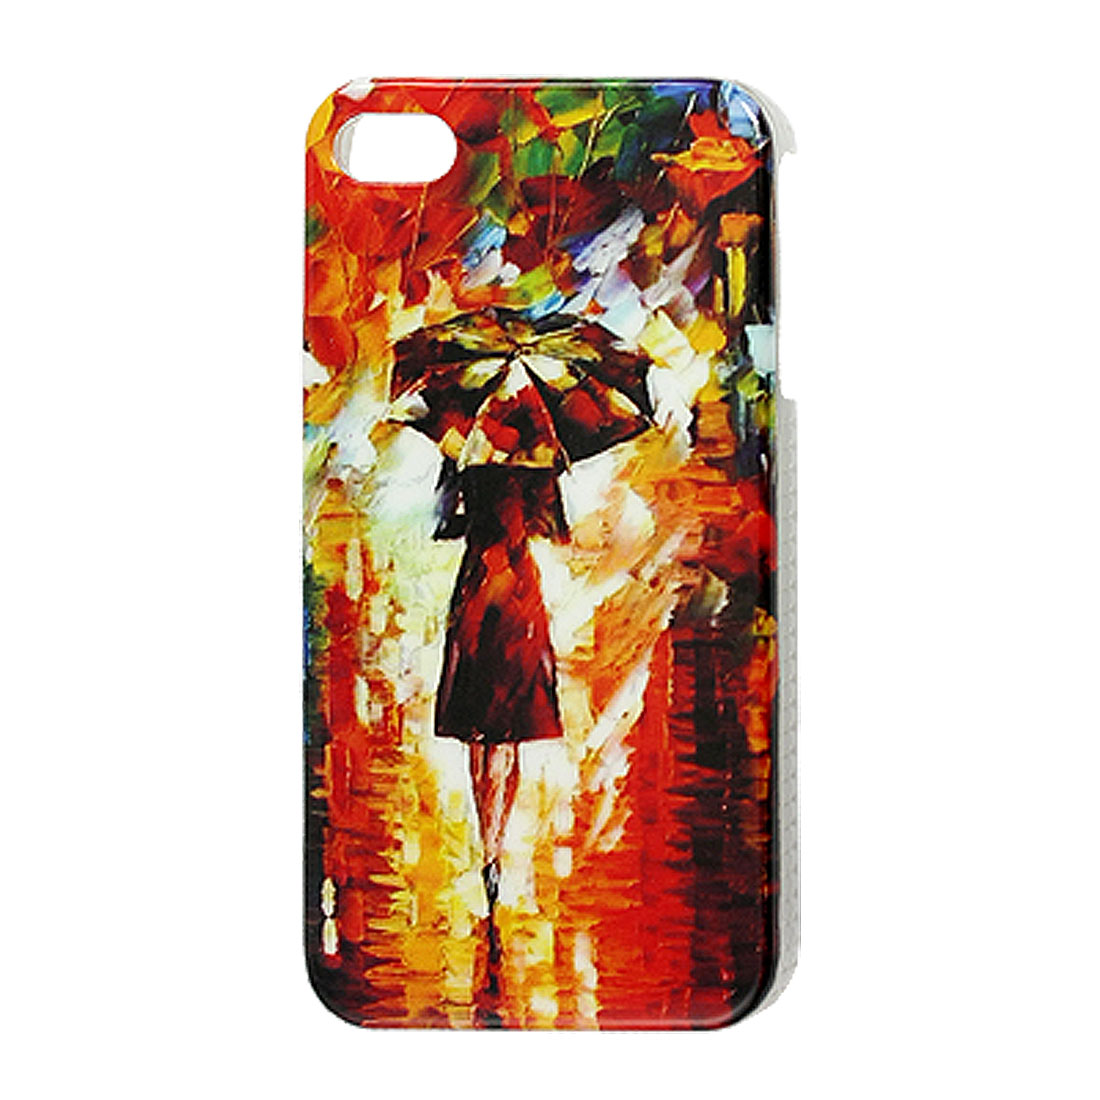 IMD Lady Walk in the Rain Pattern Plastic Back Cover for iPhone 4 4G 4S